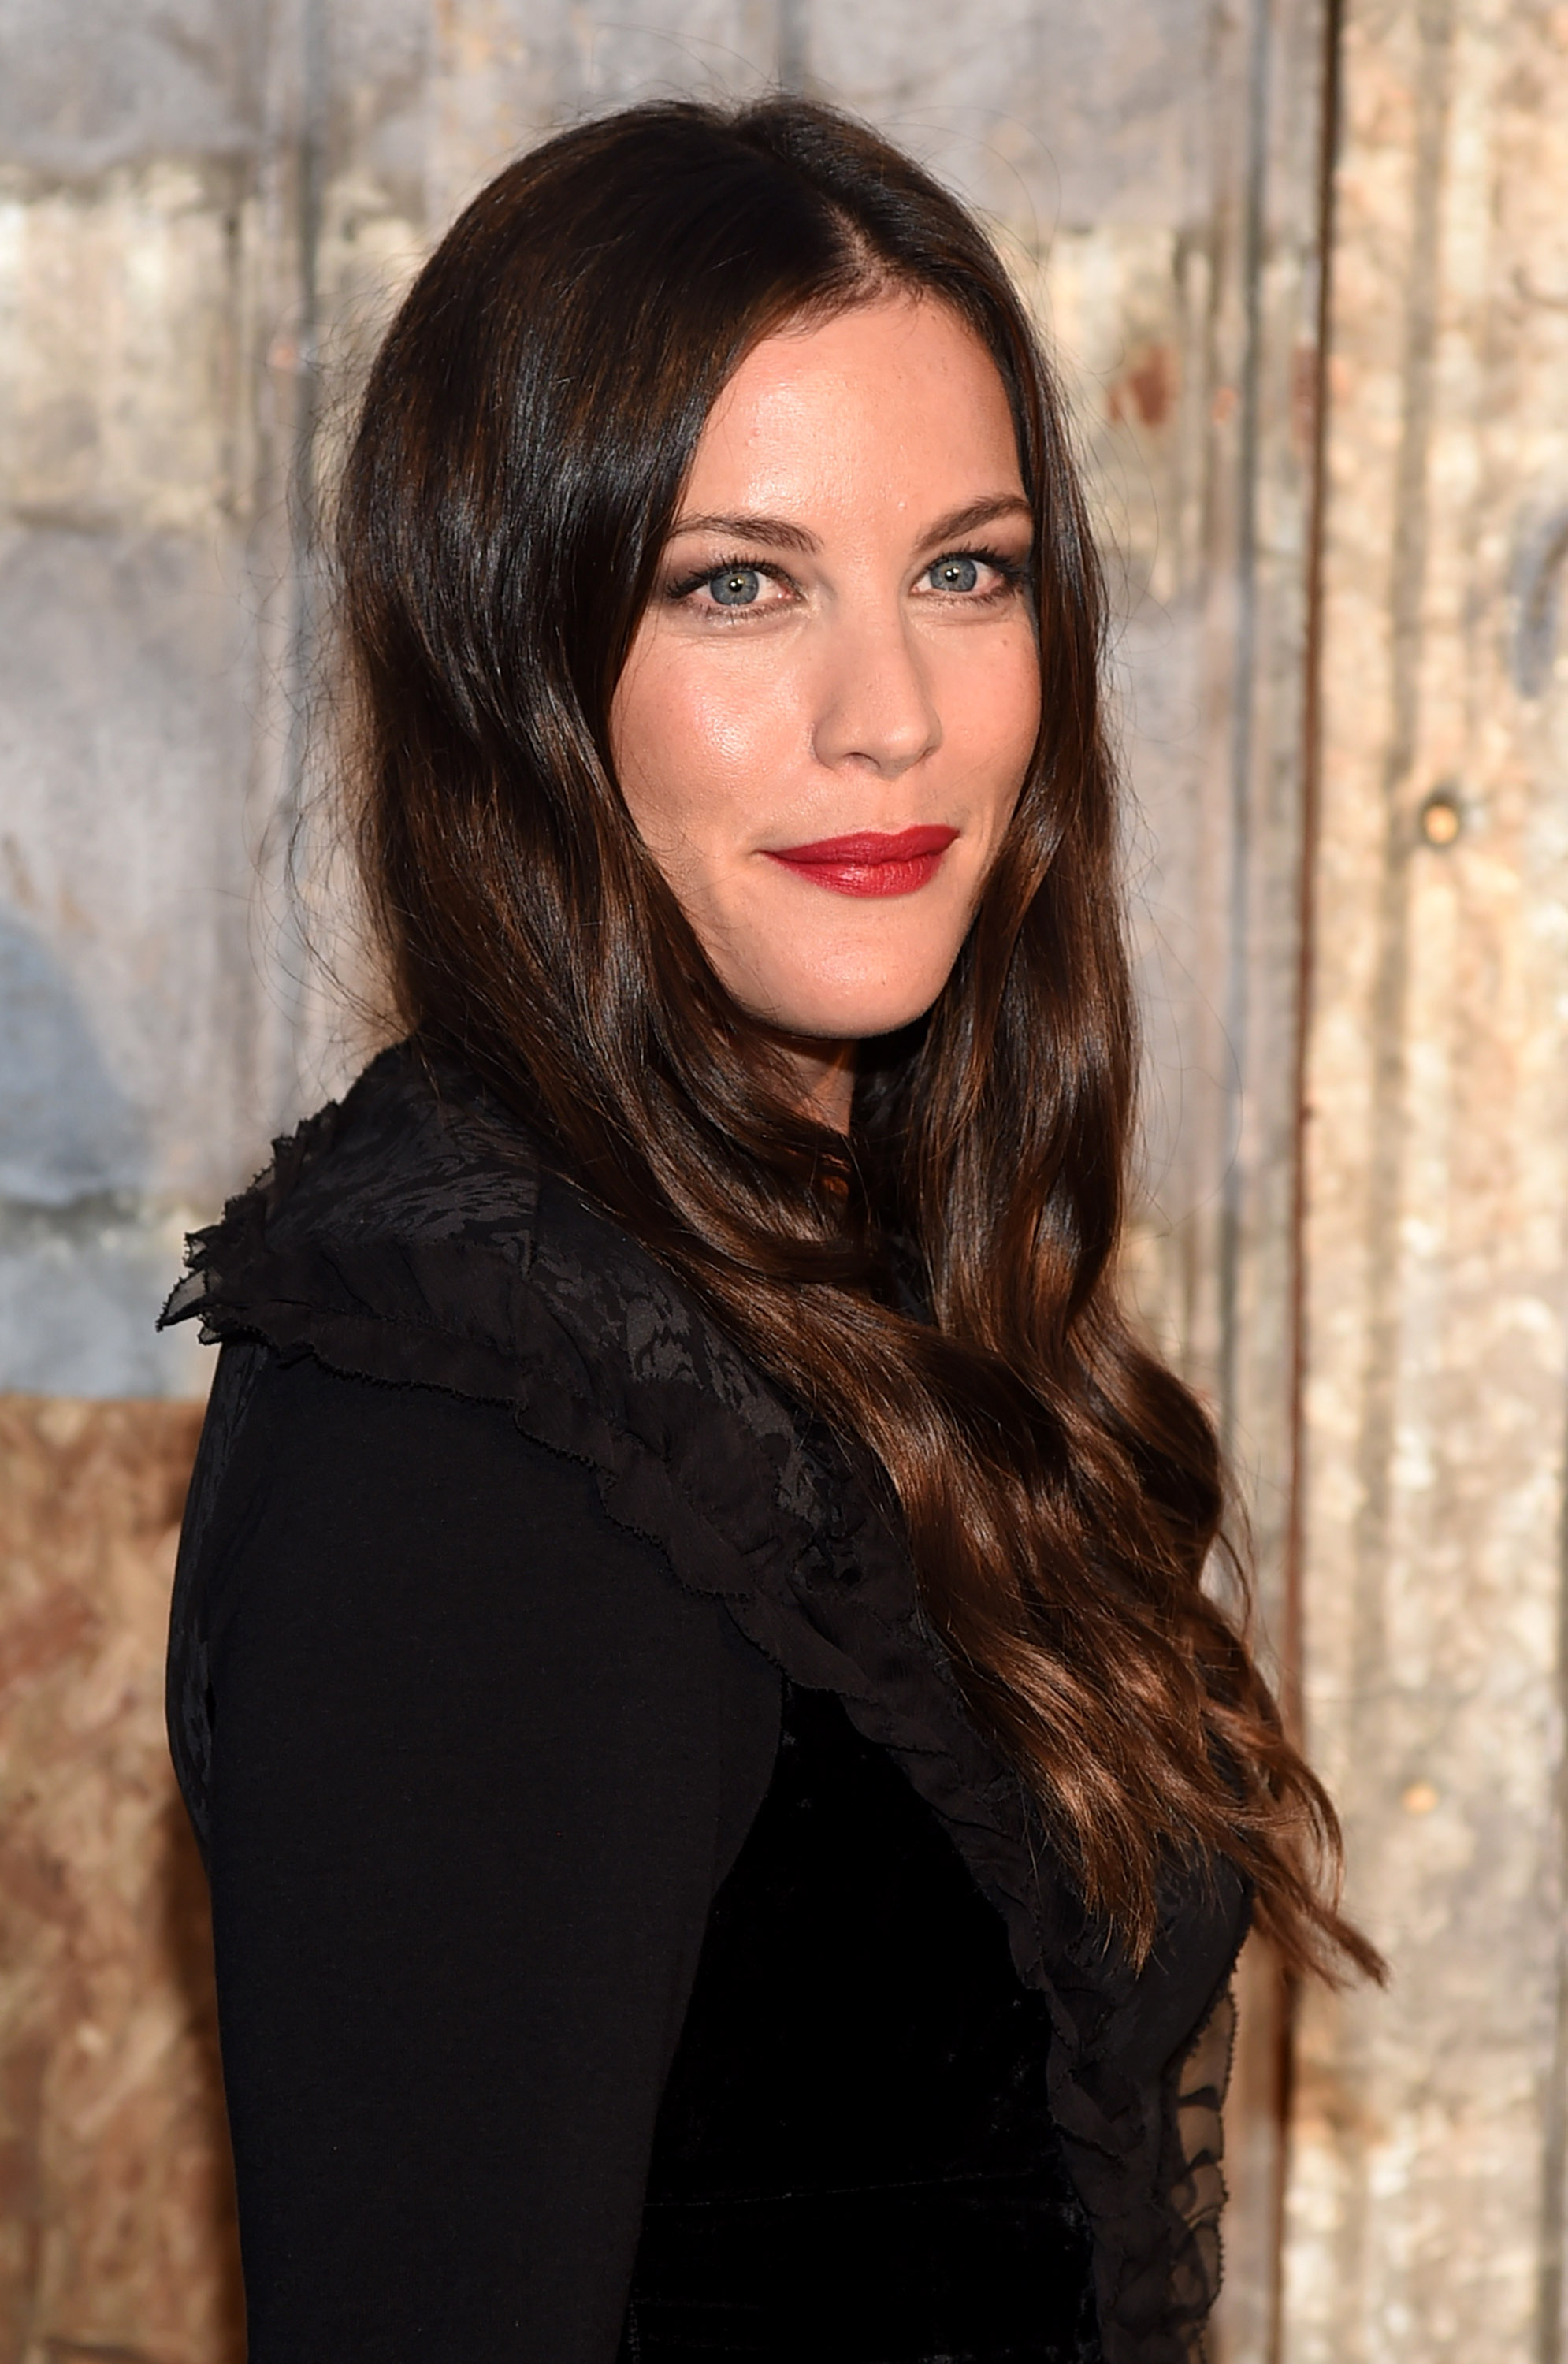 Liv Tyler attend the Givenchy fashion show during Spring 2016 New York Fashion Week at Pier 26 at Hudson River Park on Sept.11, 2015 in New York City.